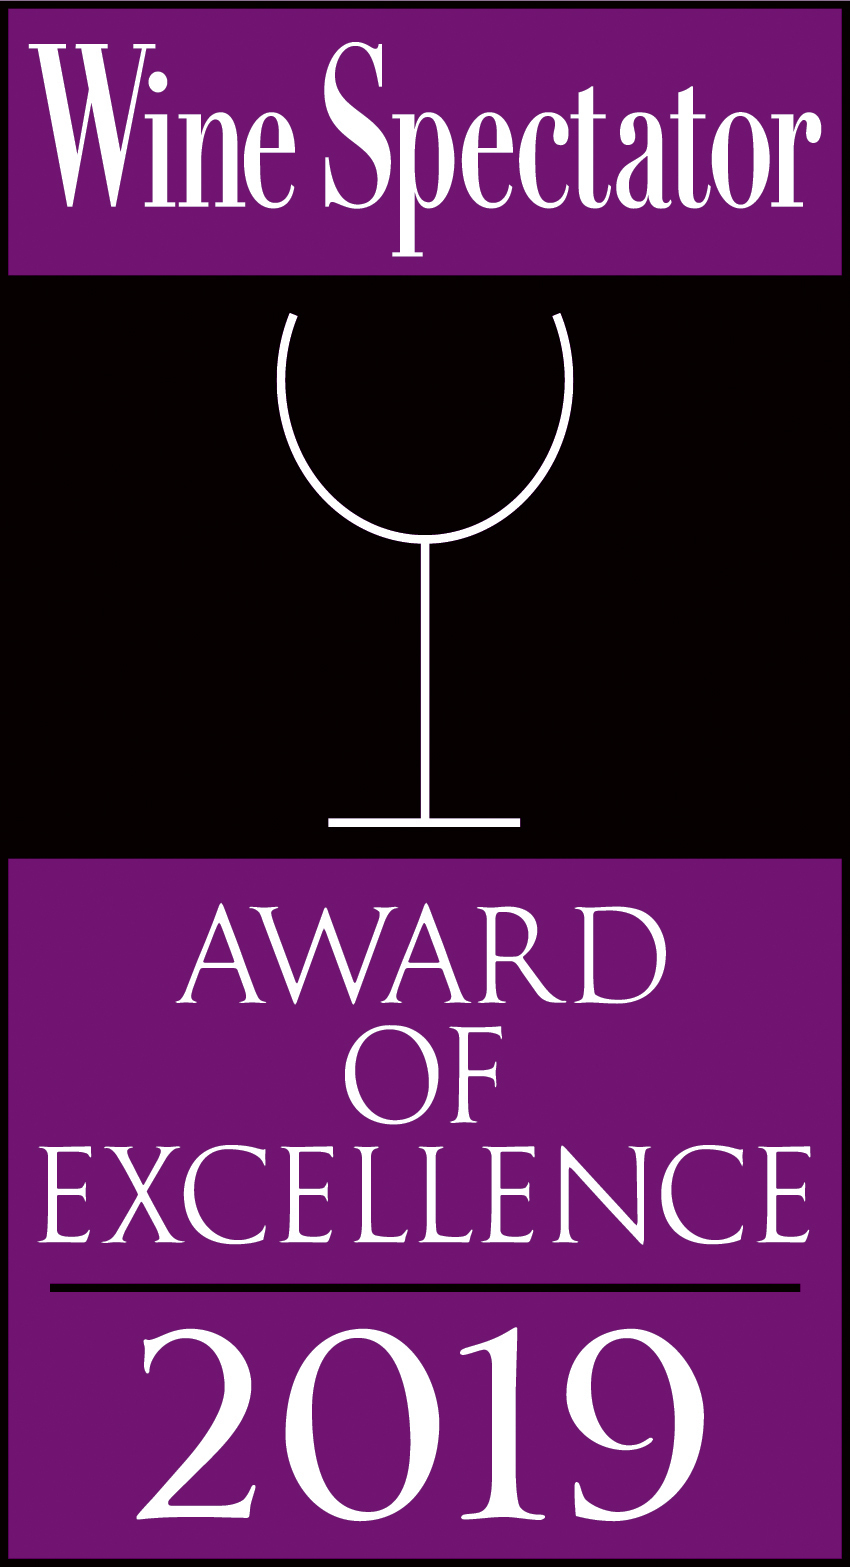 Caffe Itri has received the Wine Enthusiast Award of Excellence Every Year Since 2003